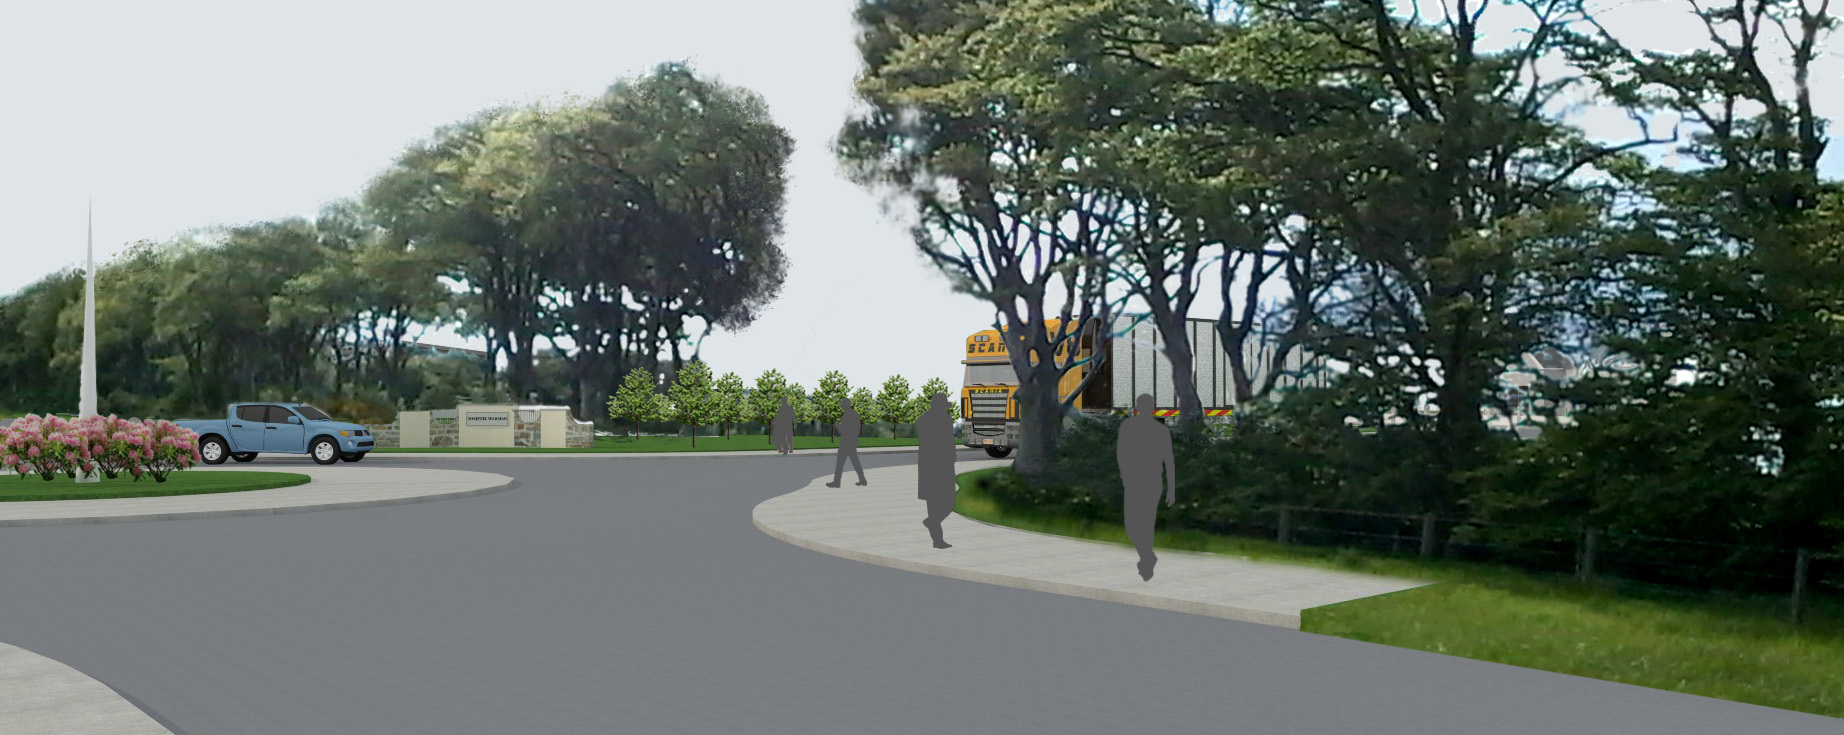 A visualisation of the North Woods business park